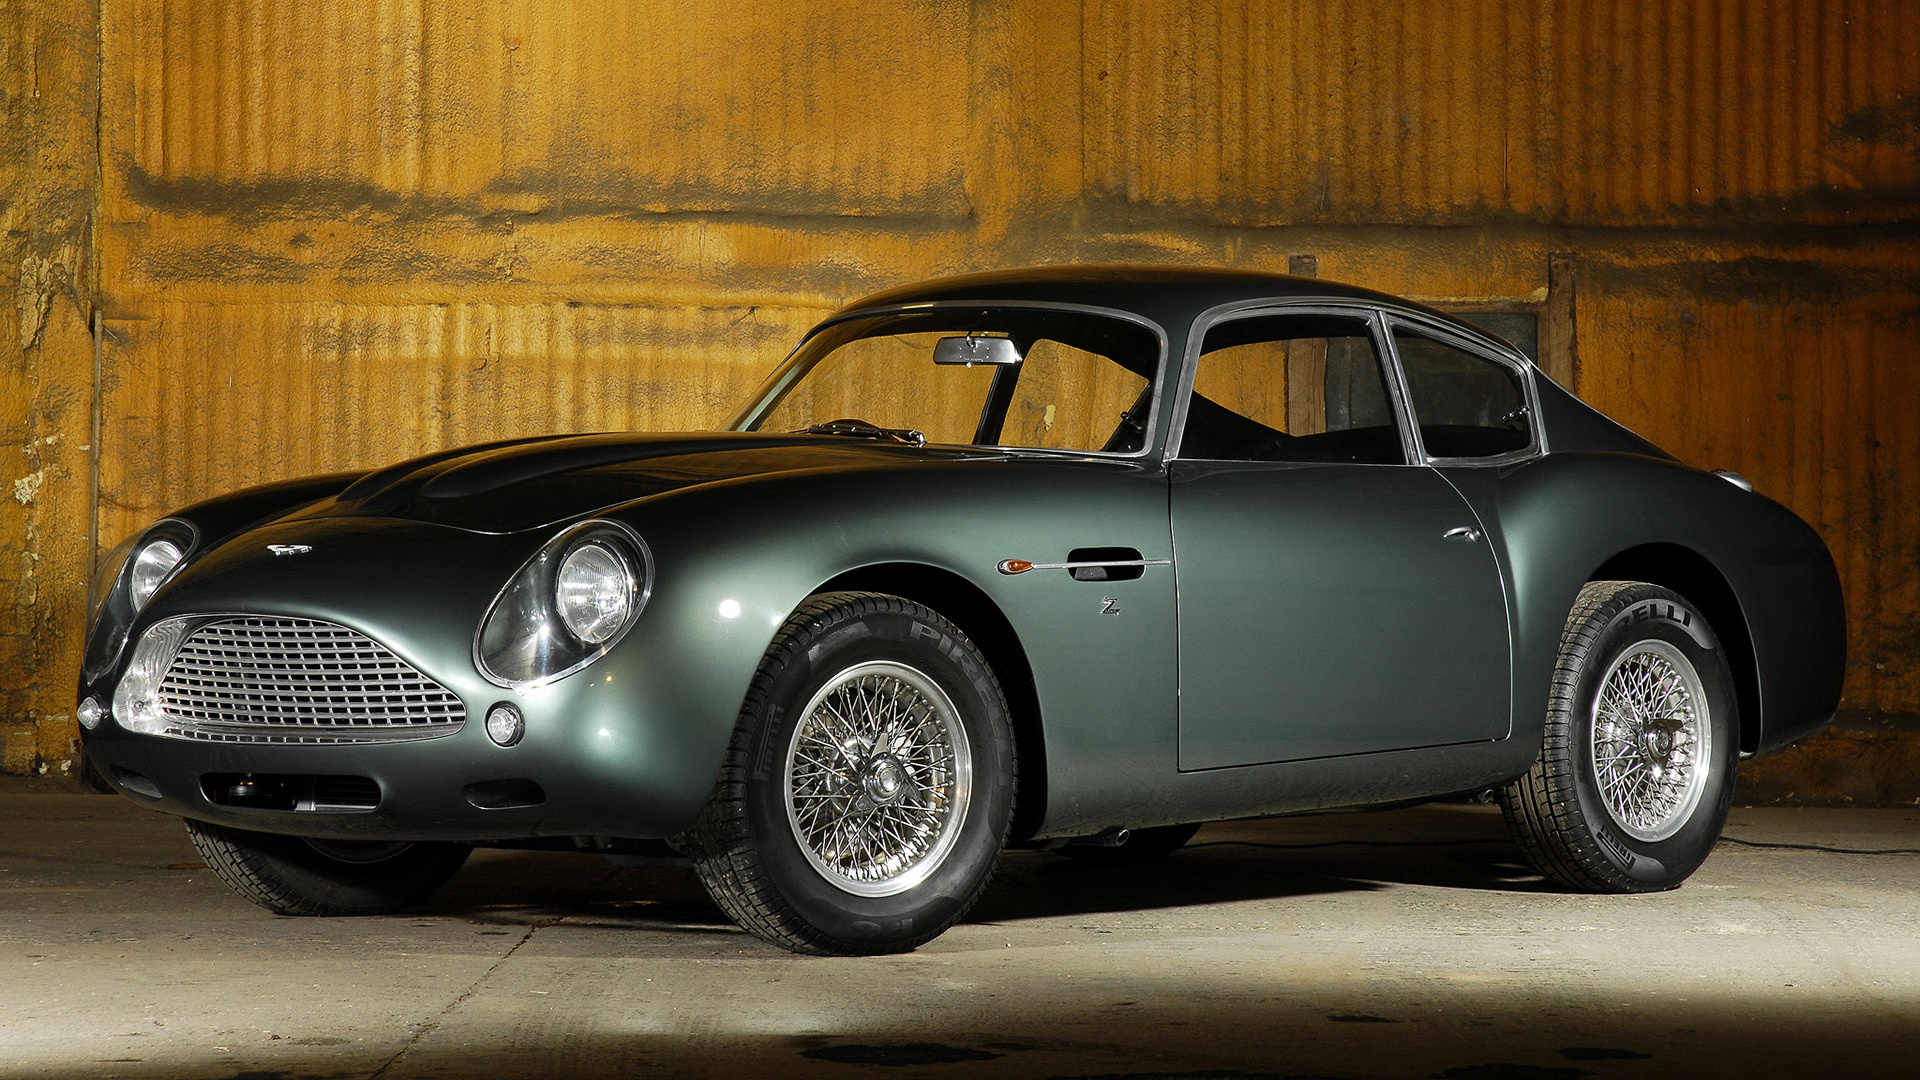 1960 Aston Martin DB4 GT Zagato (UK) - Wallpapers and HD Images | Car Pixel